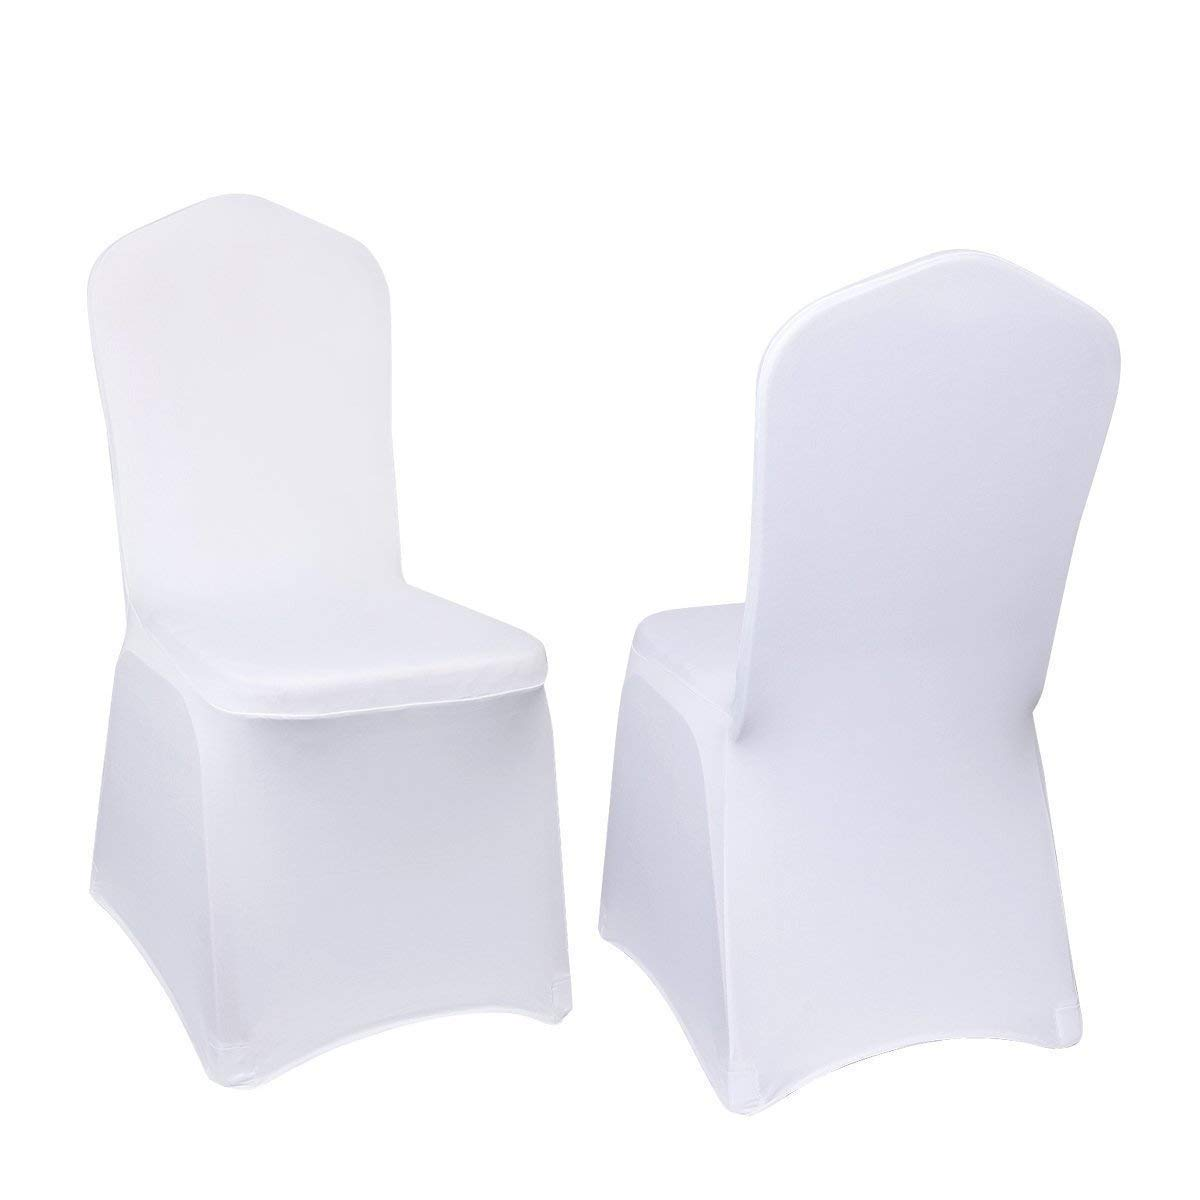 10pcs Chair Covers Slipcovers Spandex Wedding Banquet Party Anniversary Dining Chair Cover White